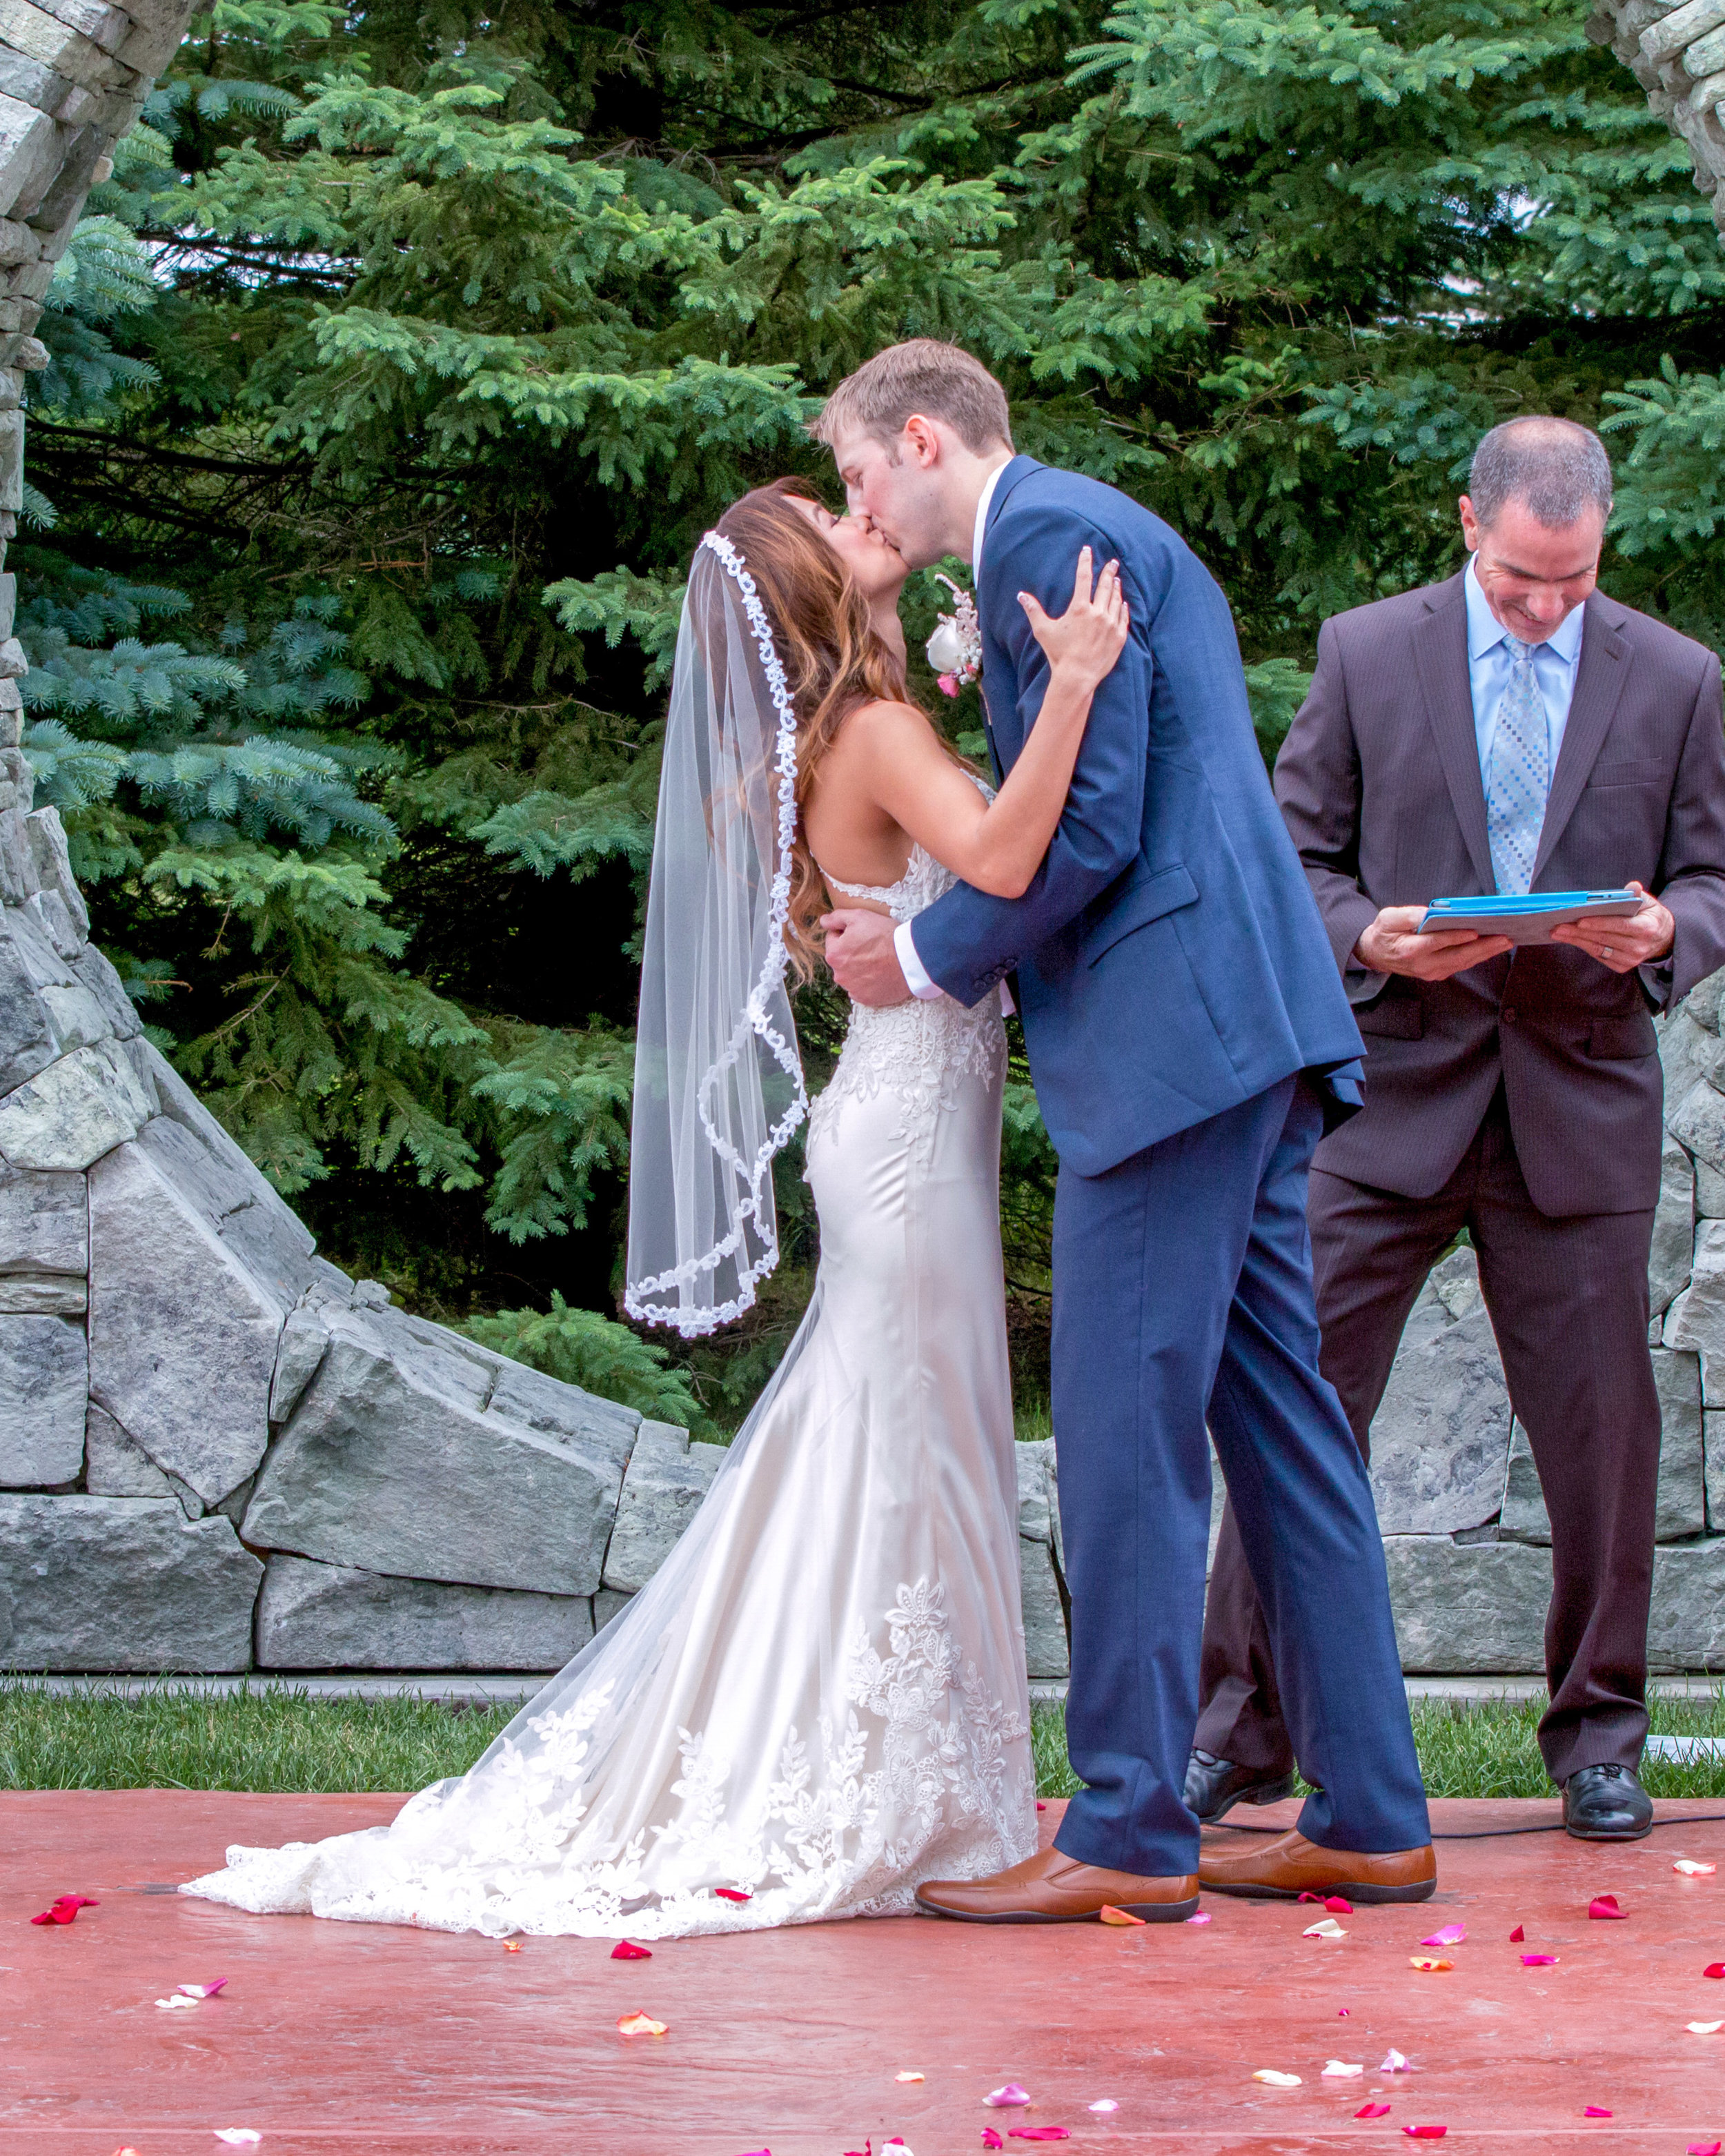 Minnesota Wedding at Glenhaven, outdoor ceremony, Fab Weddings, first kiss